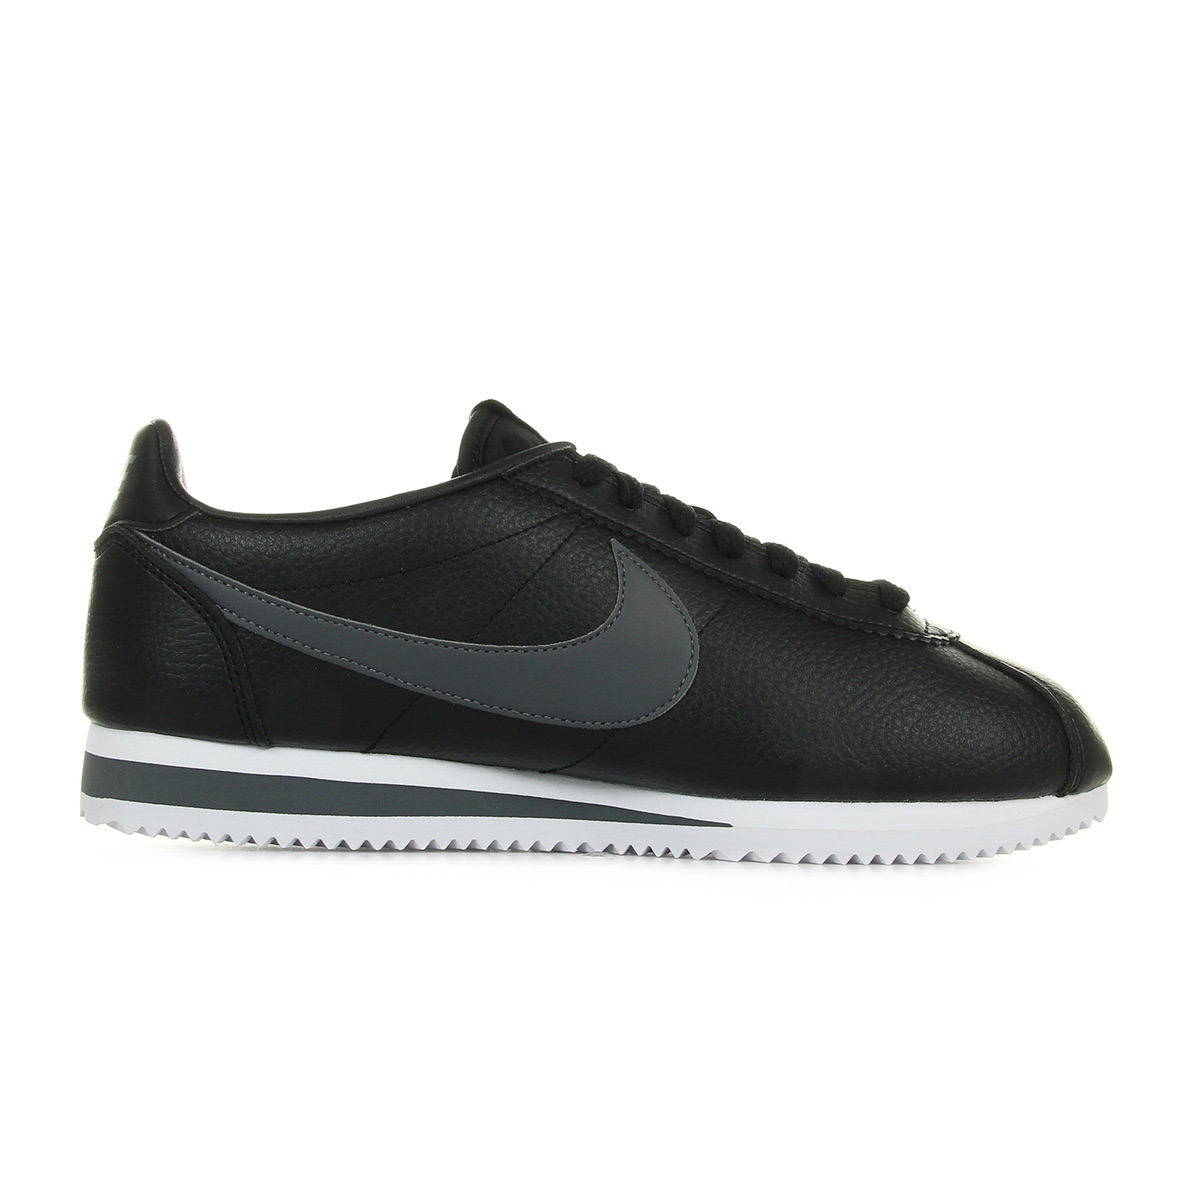 Nike Classic Cortez Leather 749571011, Baskets mode homme